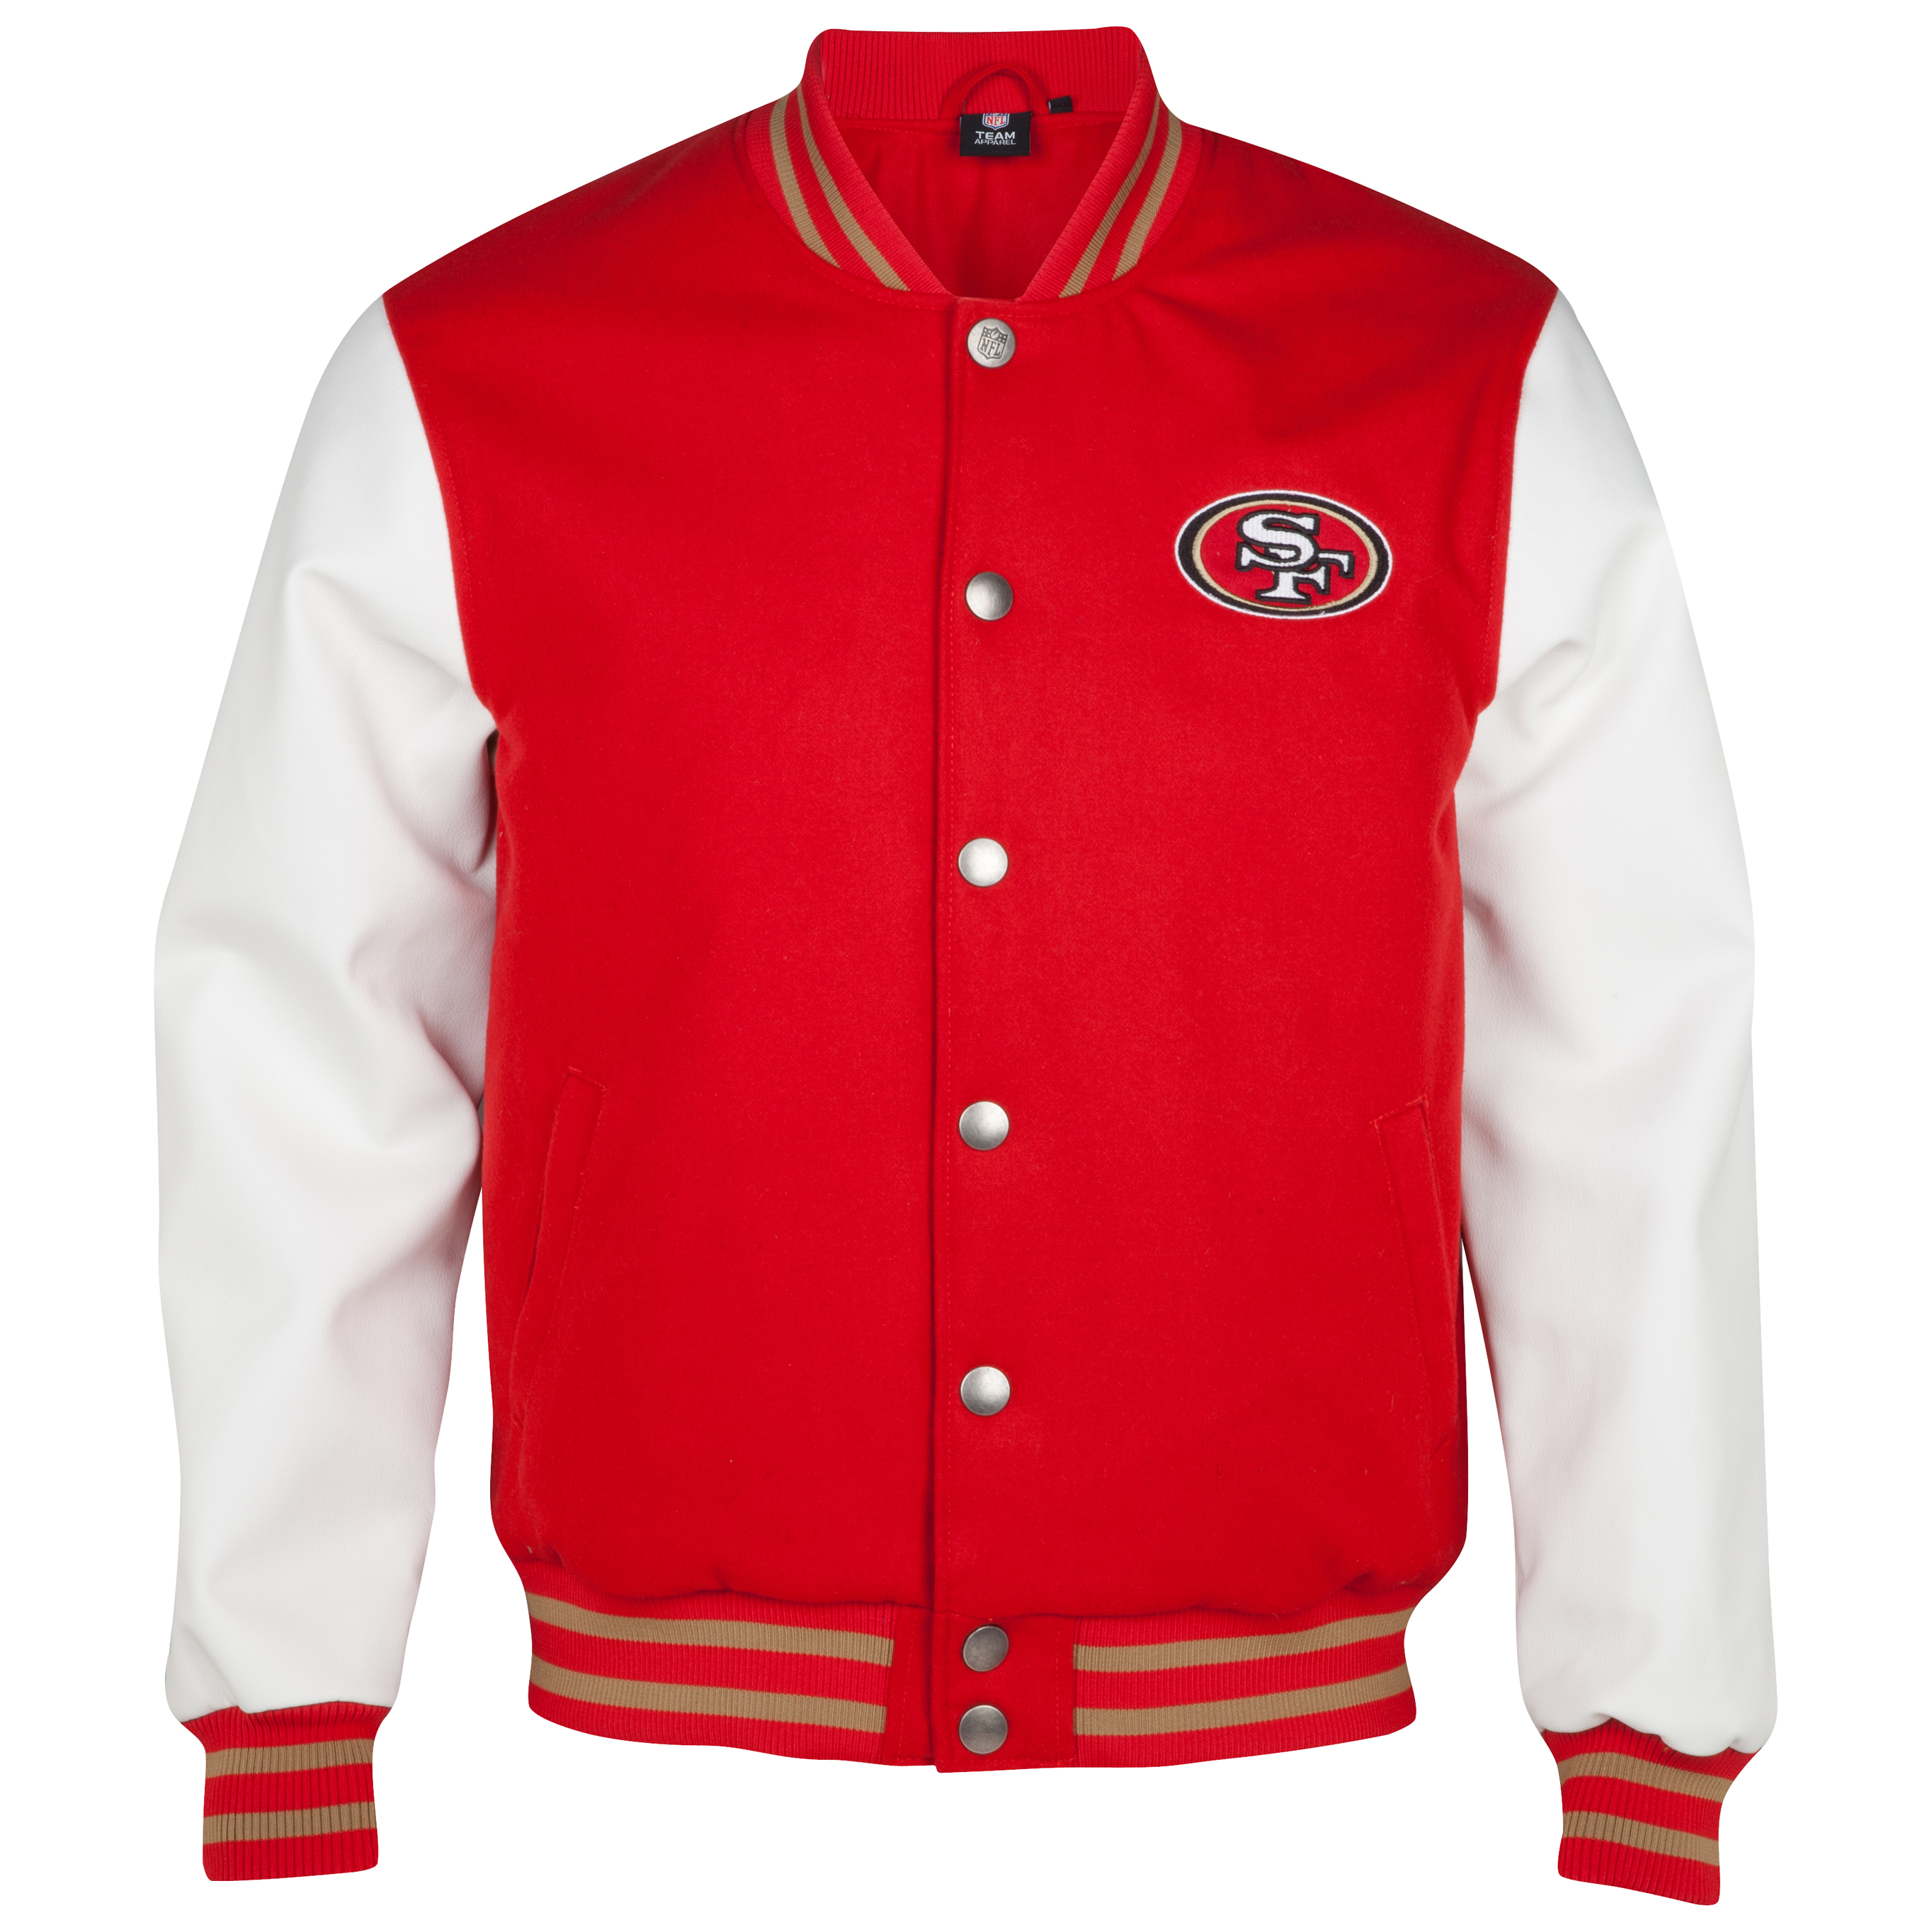 San Francisco 49ers Balfour Letterman Jacket